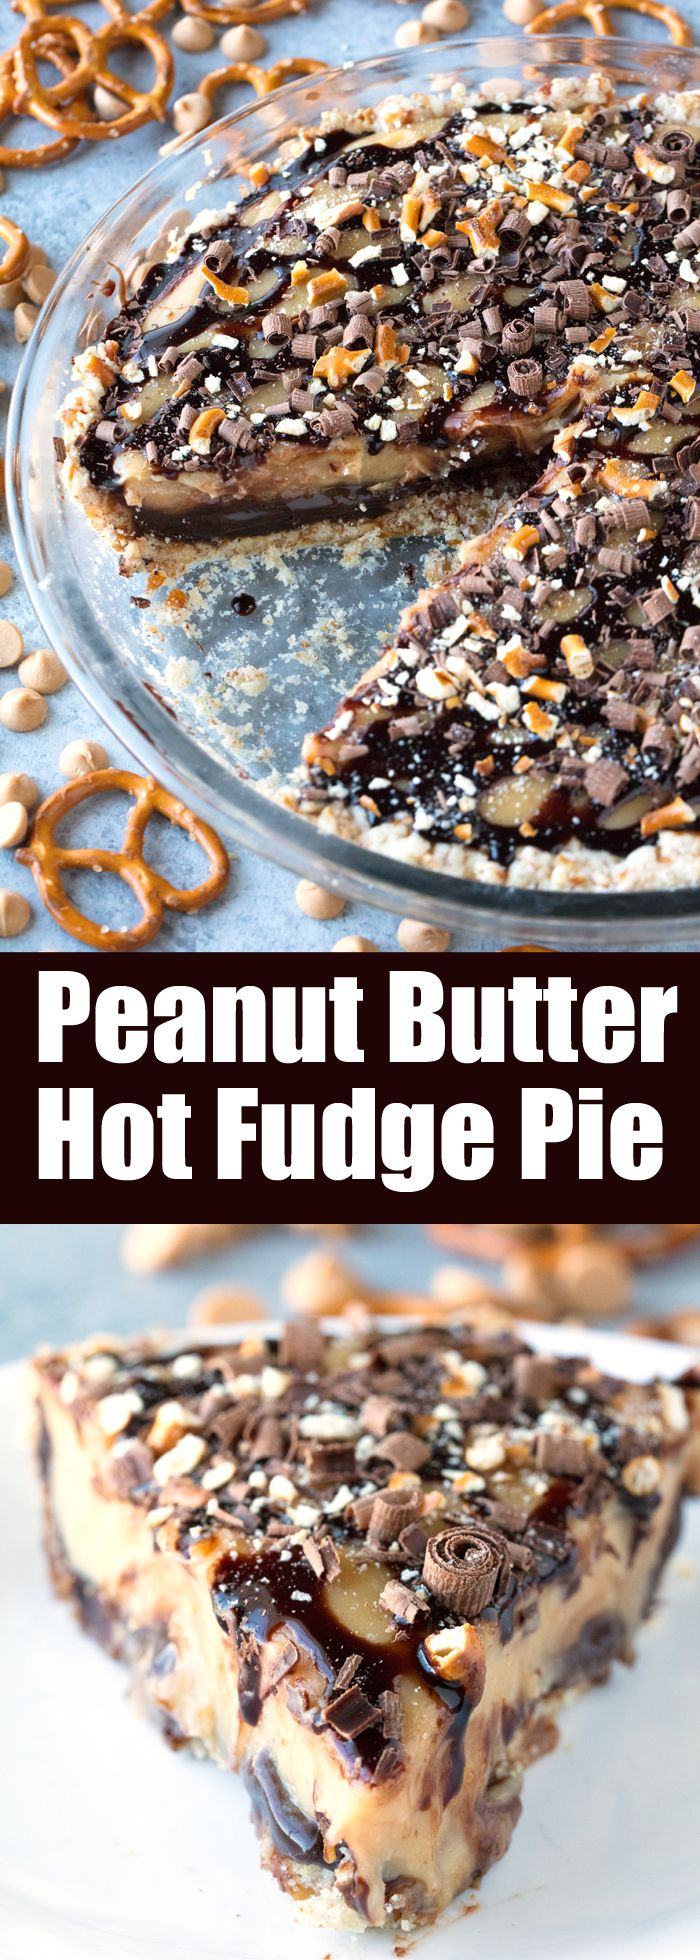 Peanut Butter Hot Fudge Pie Get ready for a pie that will change your life! Peanut Butter Hot Fudge Pie with Pretzel Crust is sure to be a family favorite!